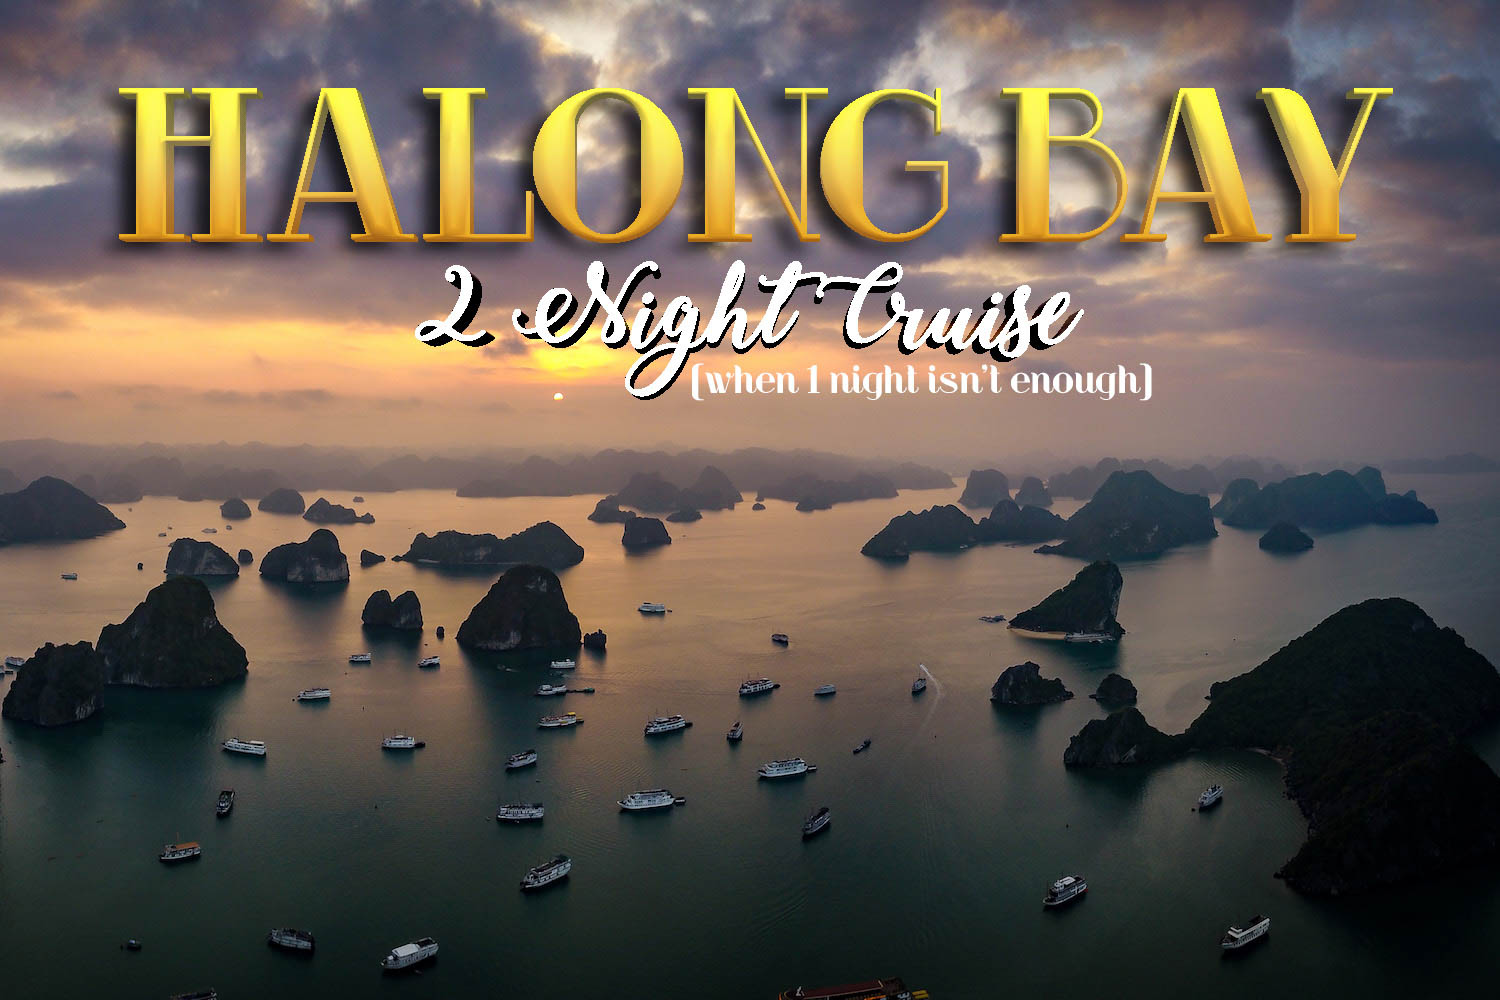 halong bay title